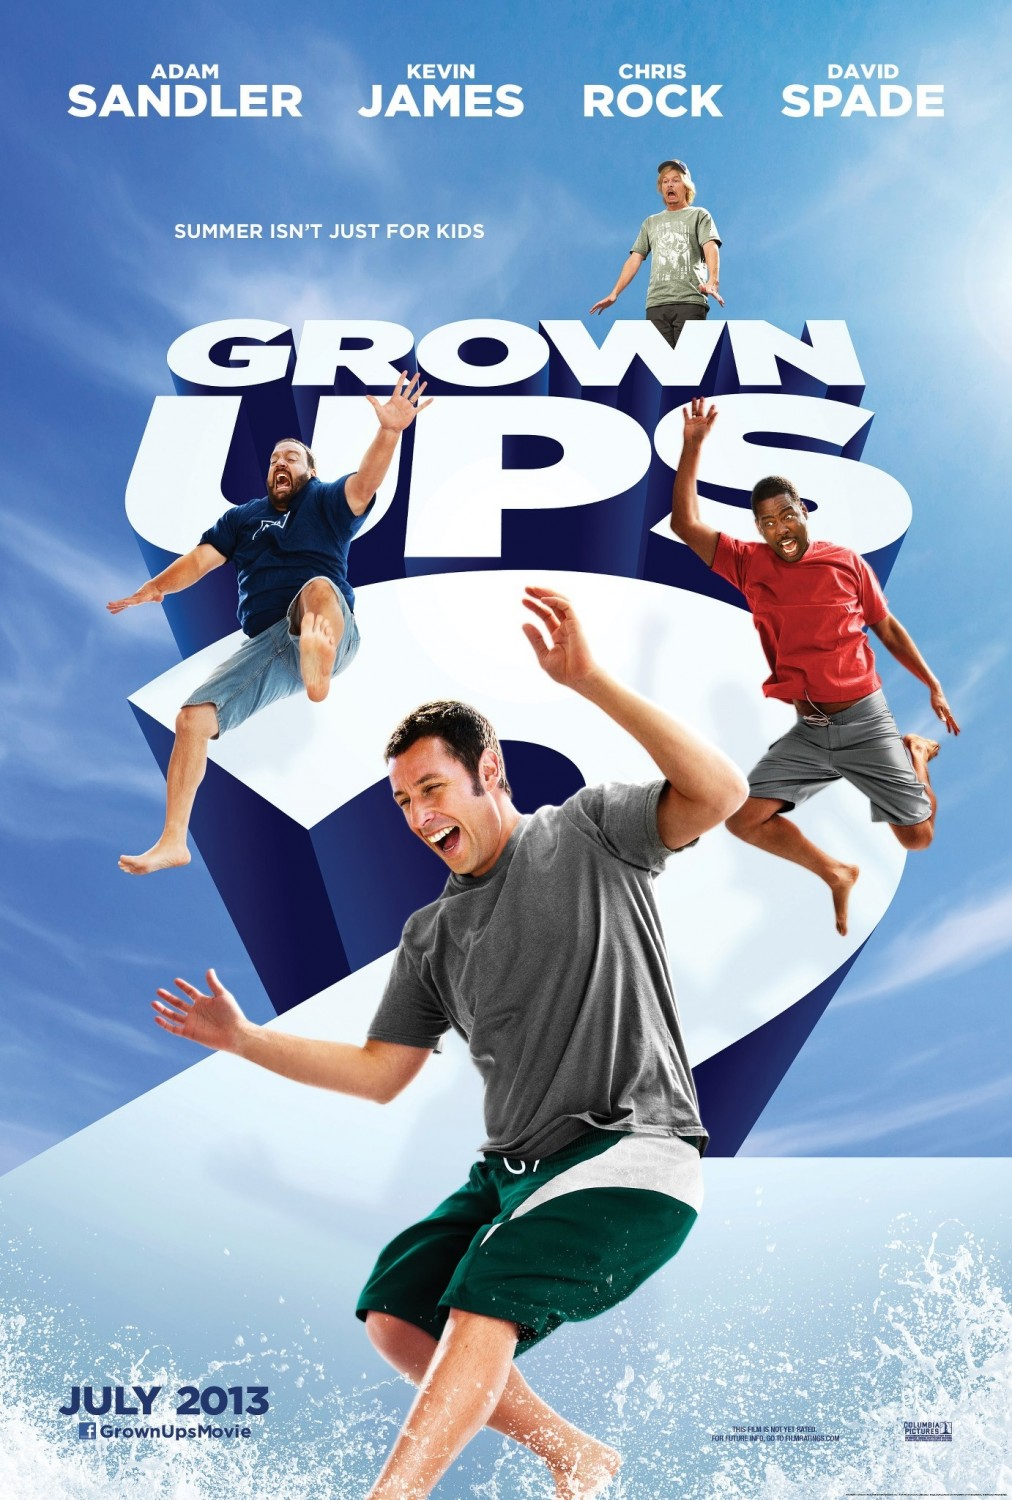 'Grown Ups 2' Trailer: Adam Sandler And His Friends Are Back